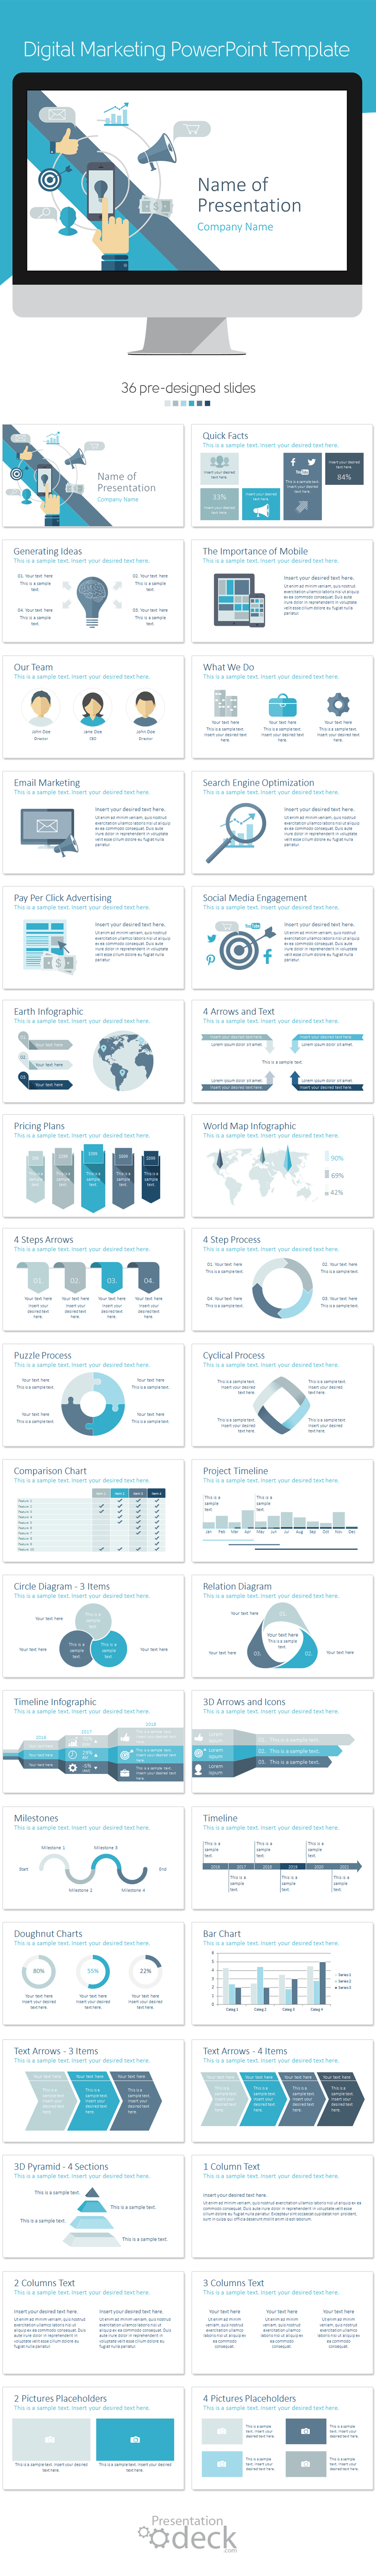 digital marketing powerpoint template powerpoint templates by